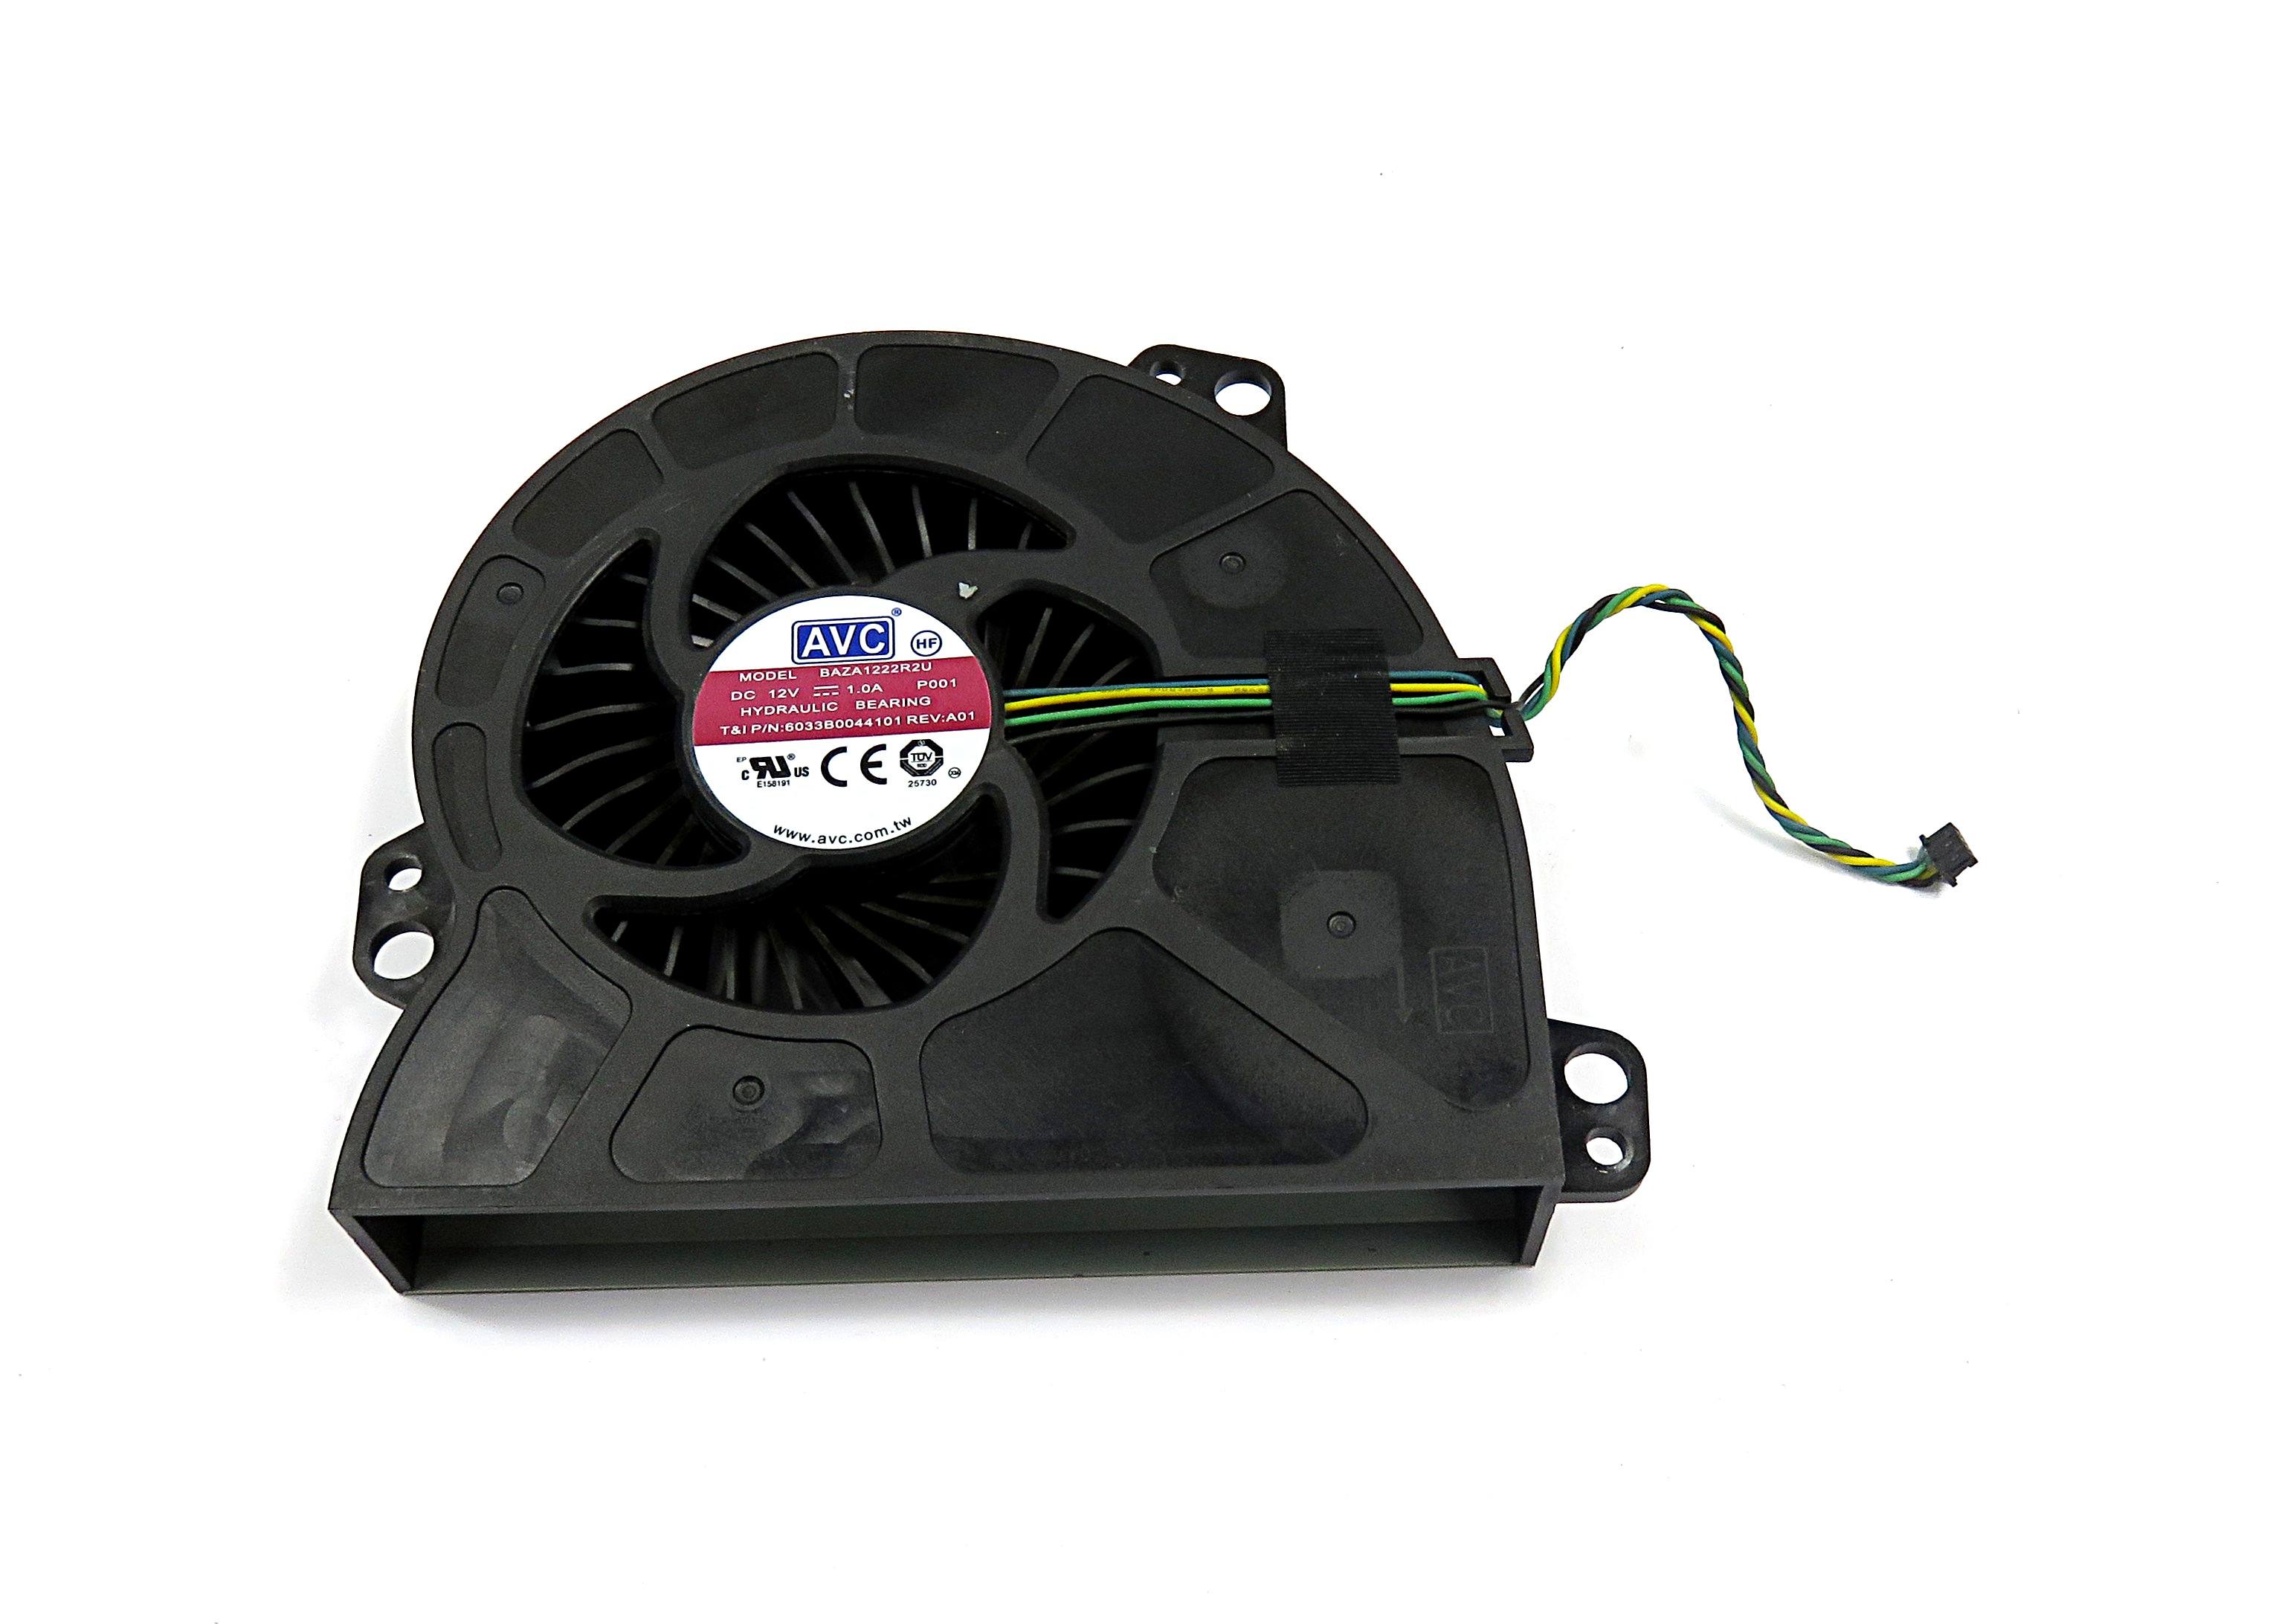 00KT205 Lenovo Cooling Fan for ideacentre AIO 700-24ISH - AVC BAZA1222R2U